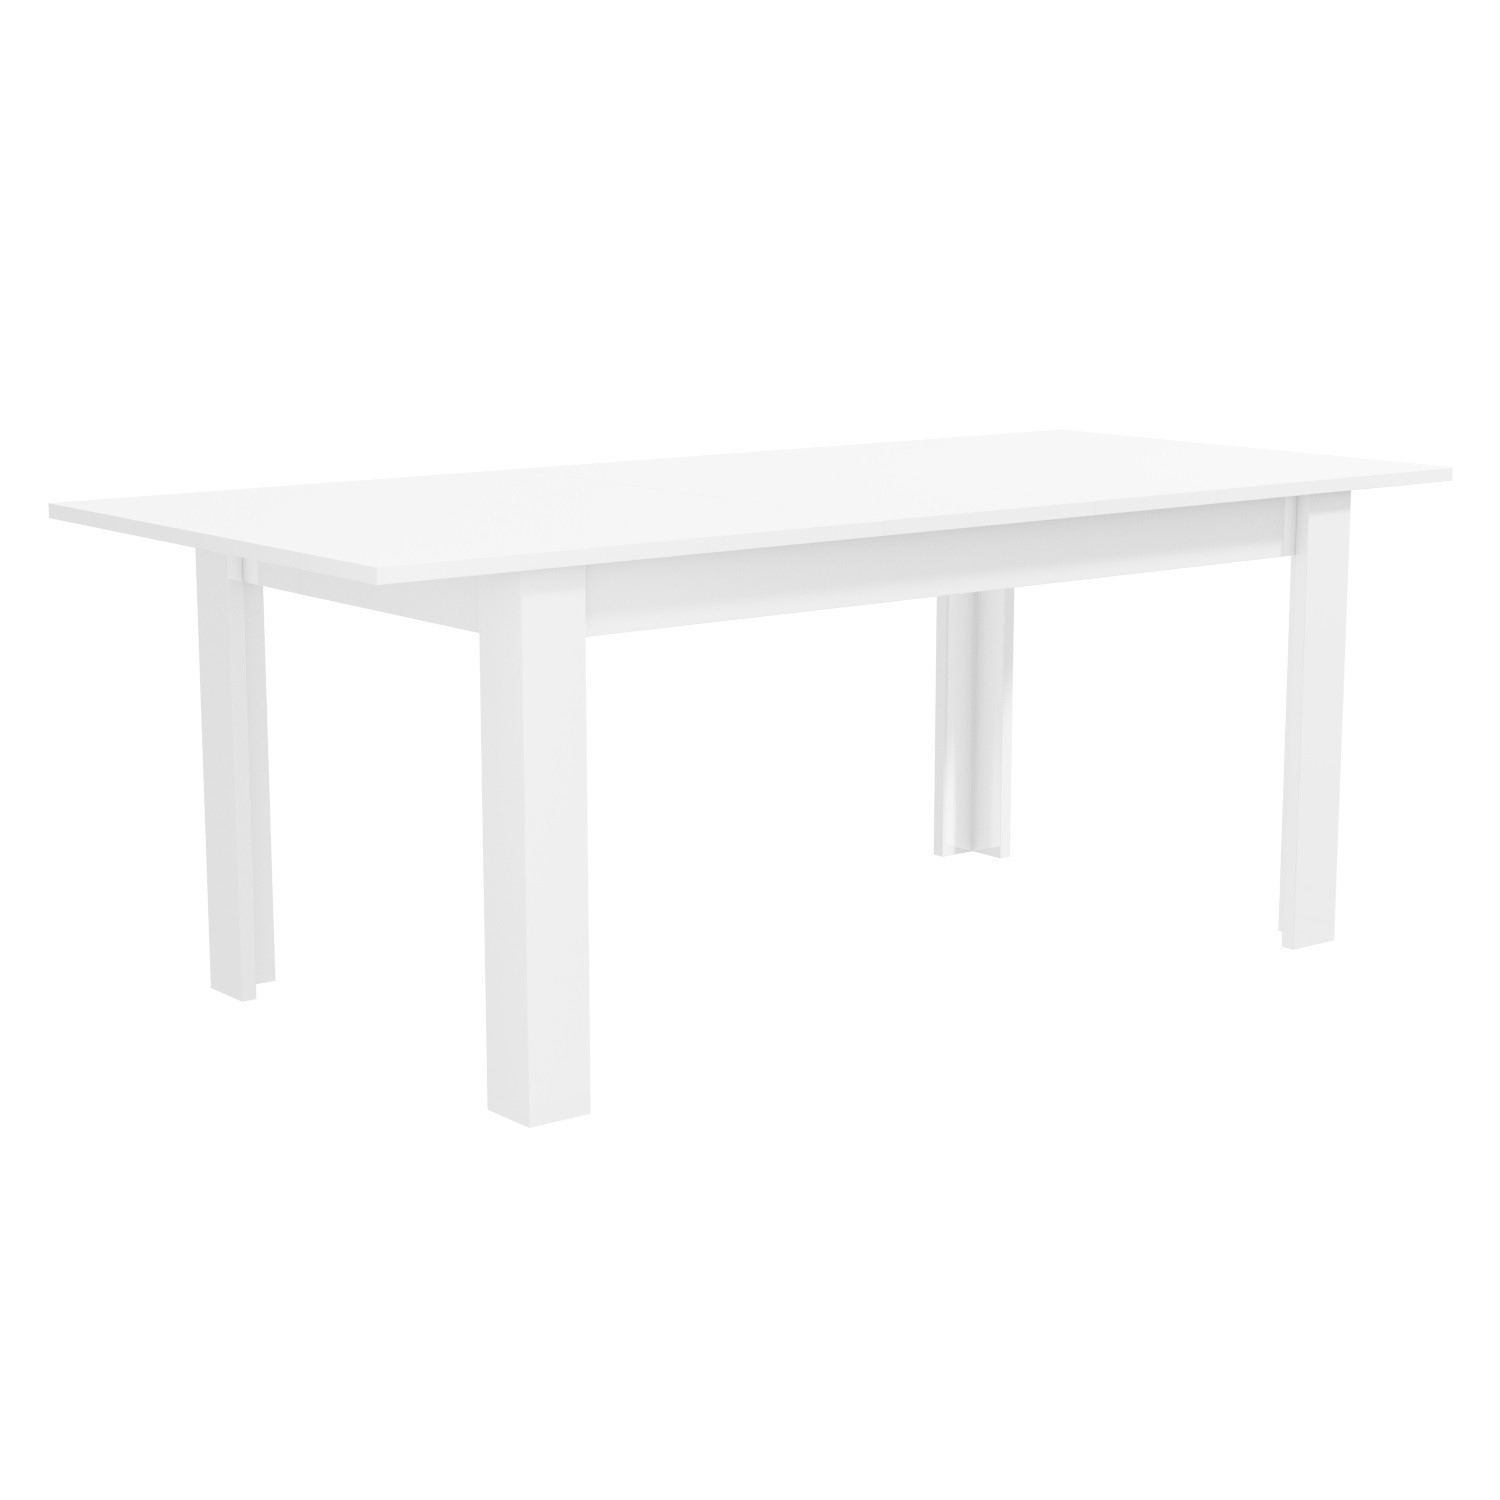 vivienne extendable white high gloss dining table 4 6 seater rh furniture123 co uk white dining table with black chairs white dining table canada